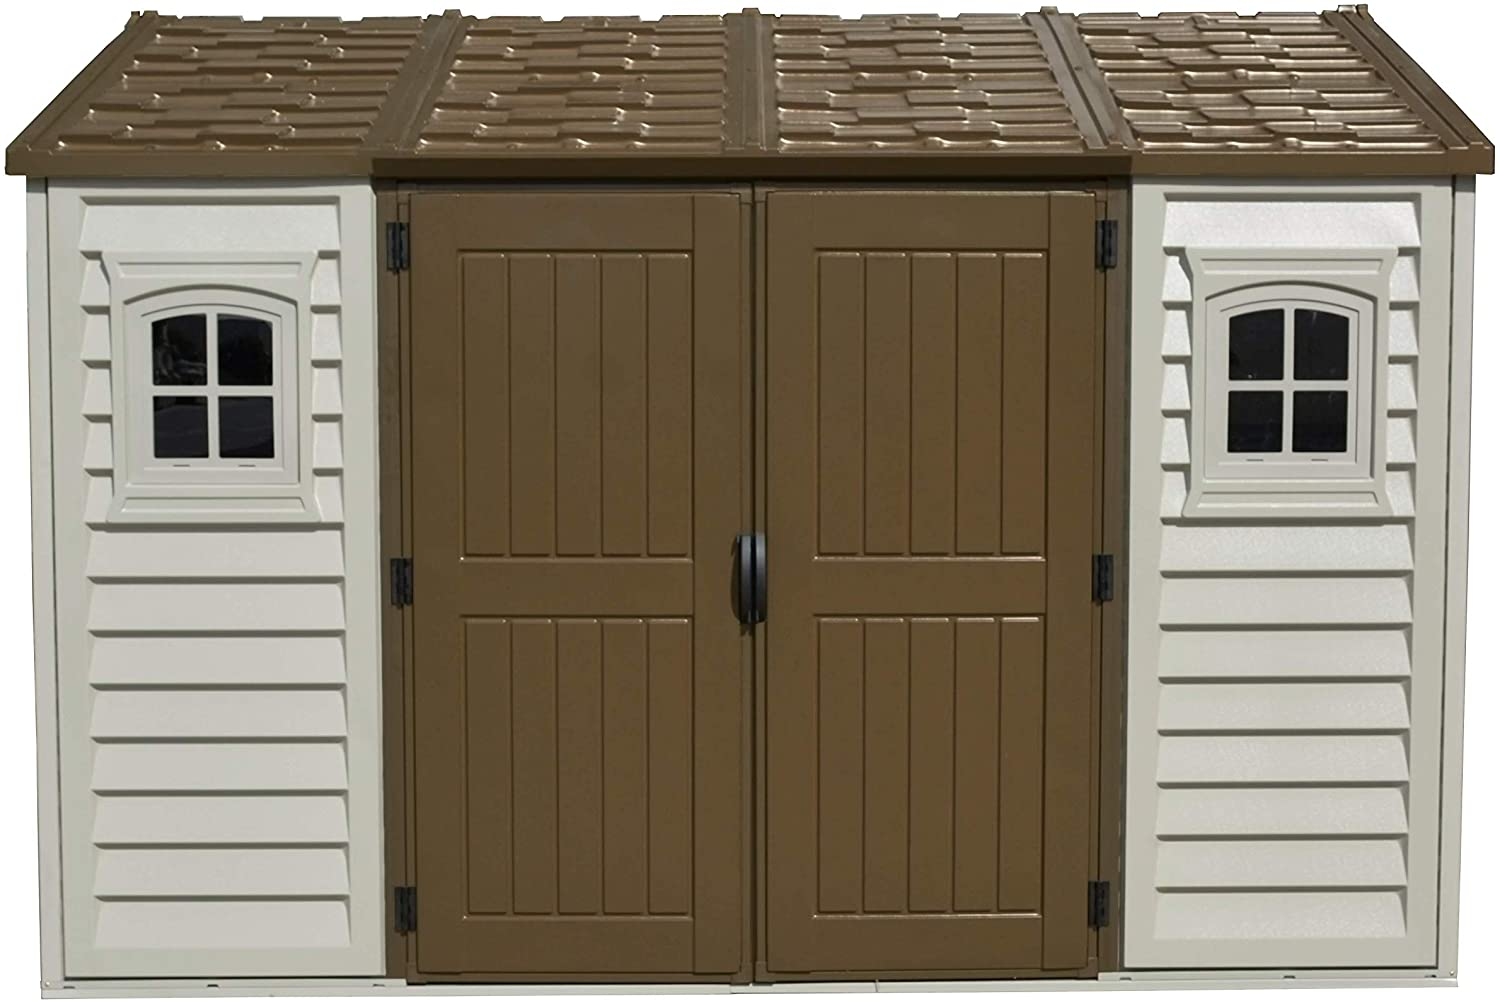 DURAMAX PLASTIC APEX SHED 10.5X8FT IVORY/BROWN